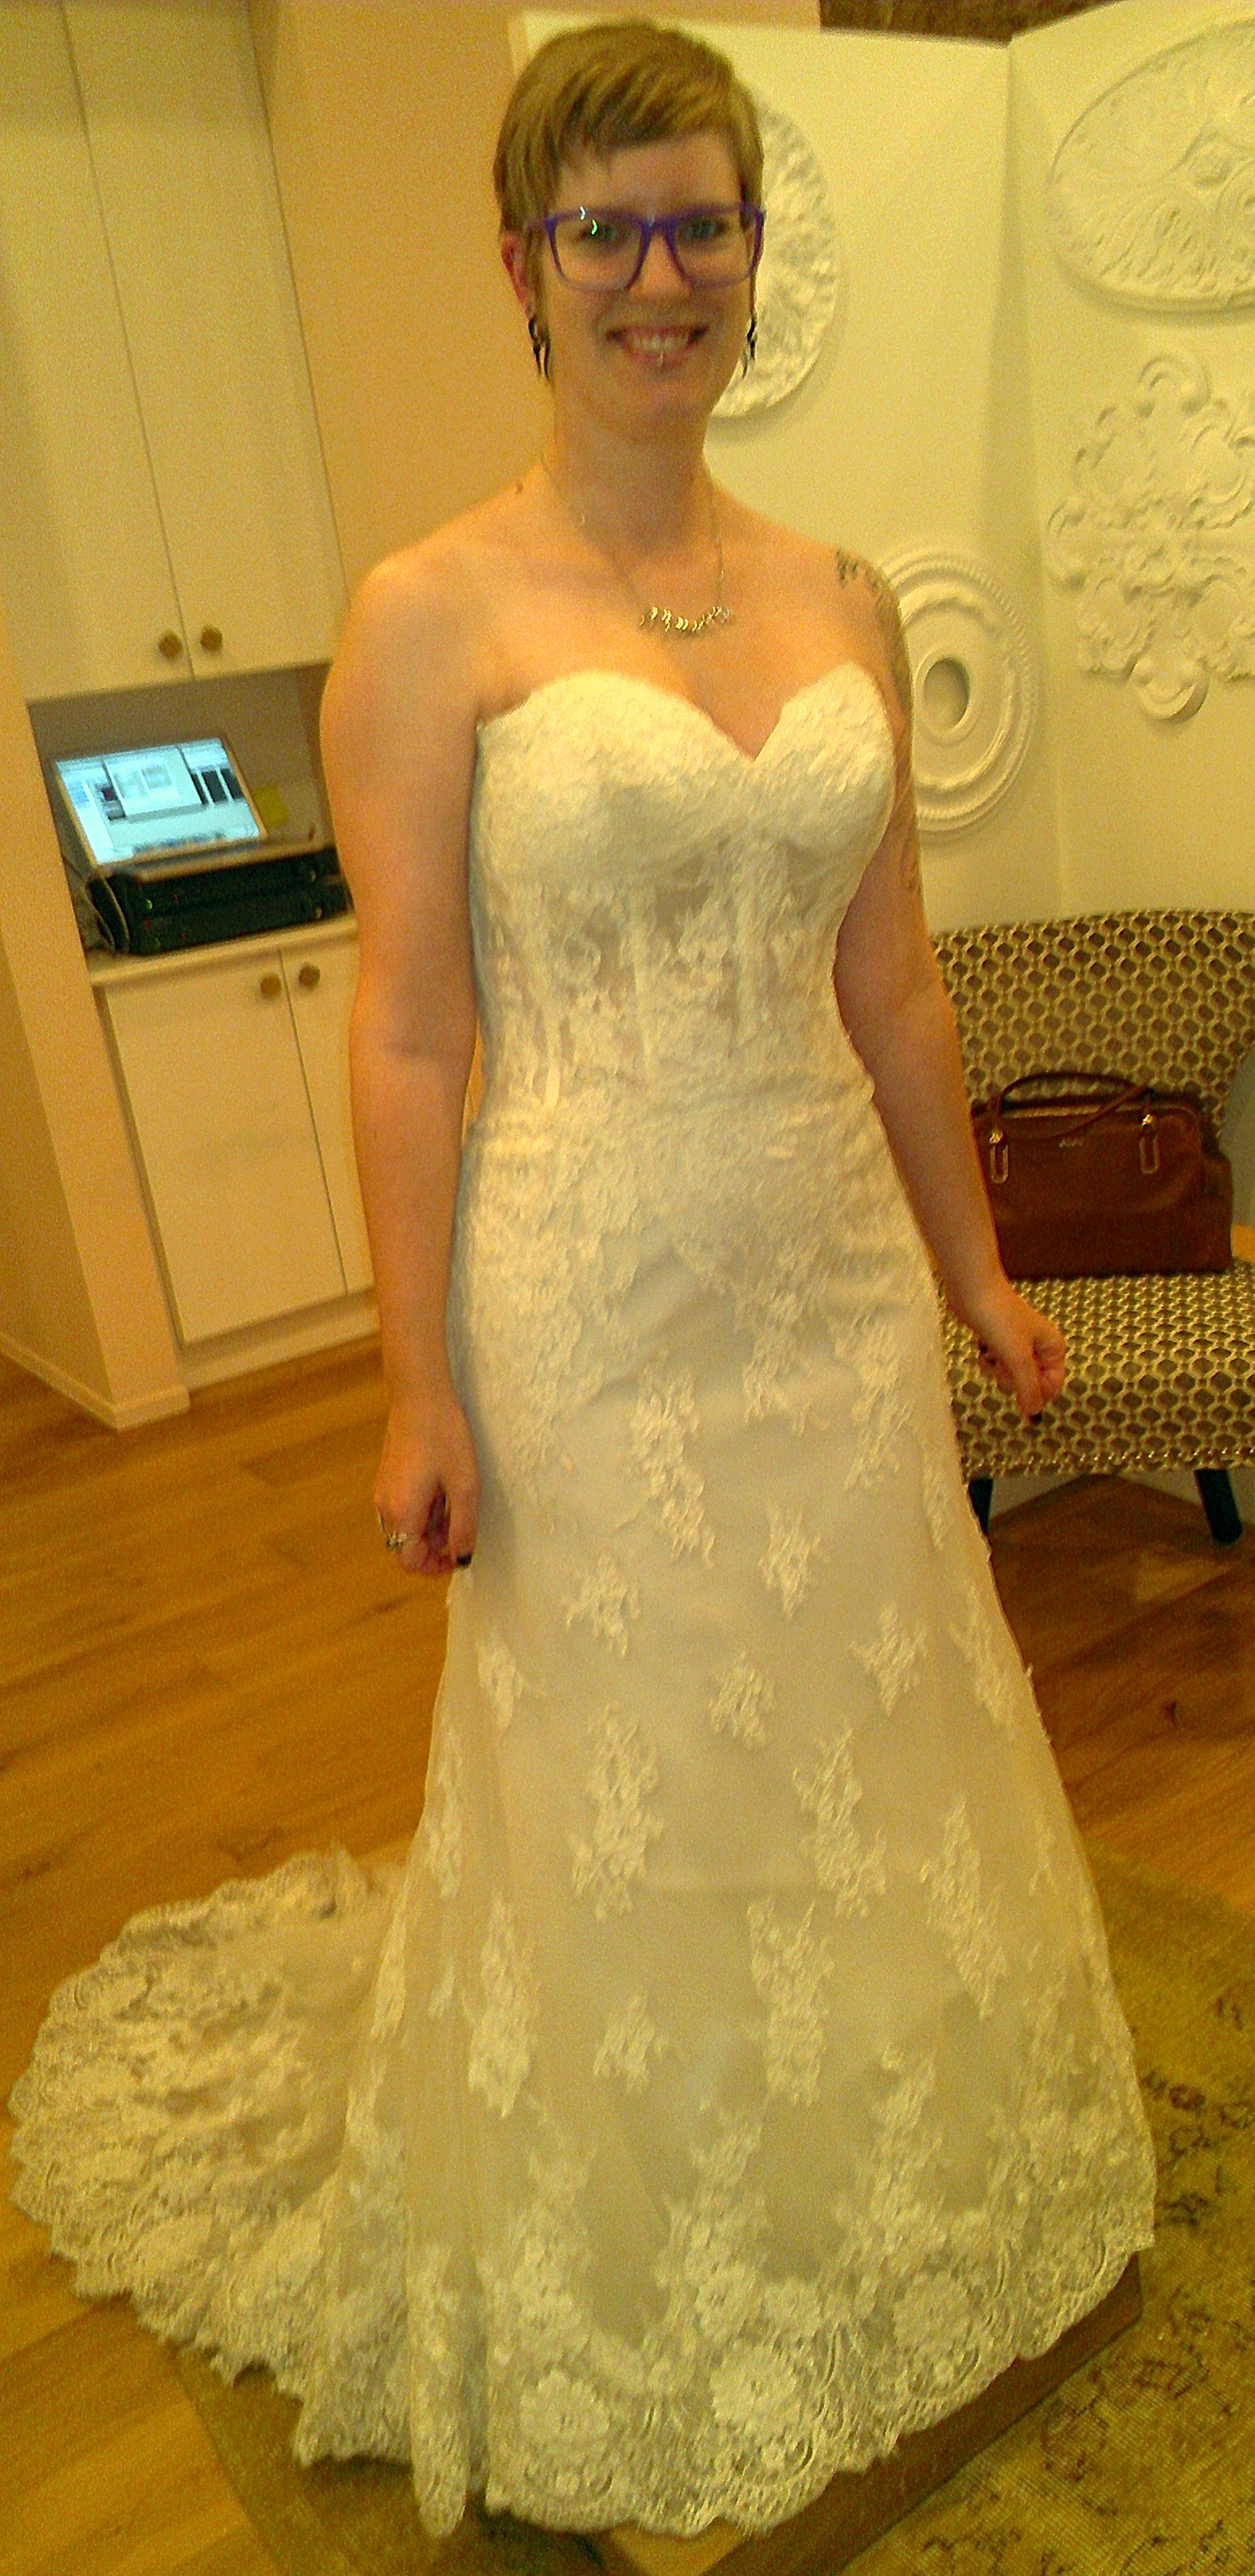 Off the Rack ~ Wedding Dress Shopping Part III: Alterations ...